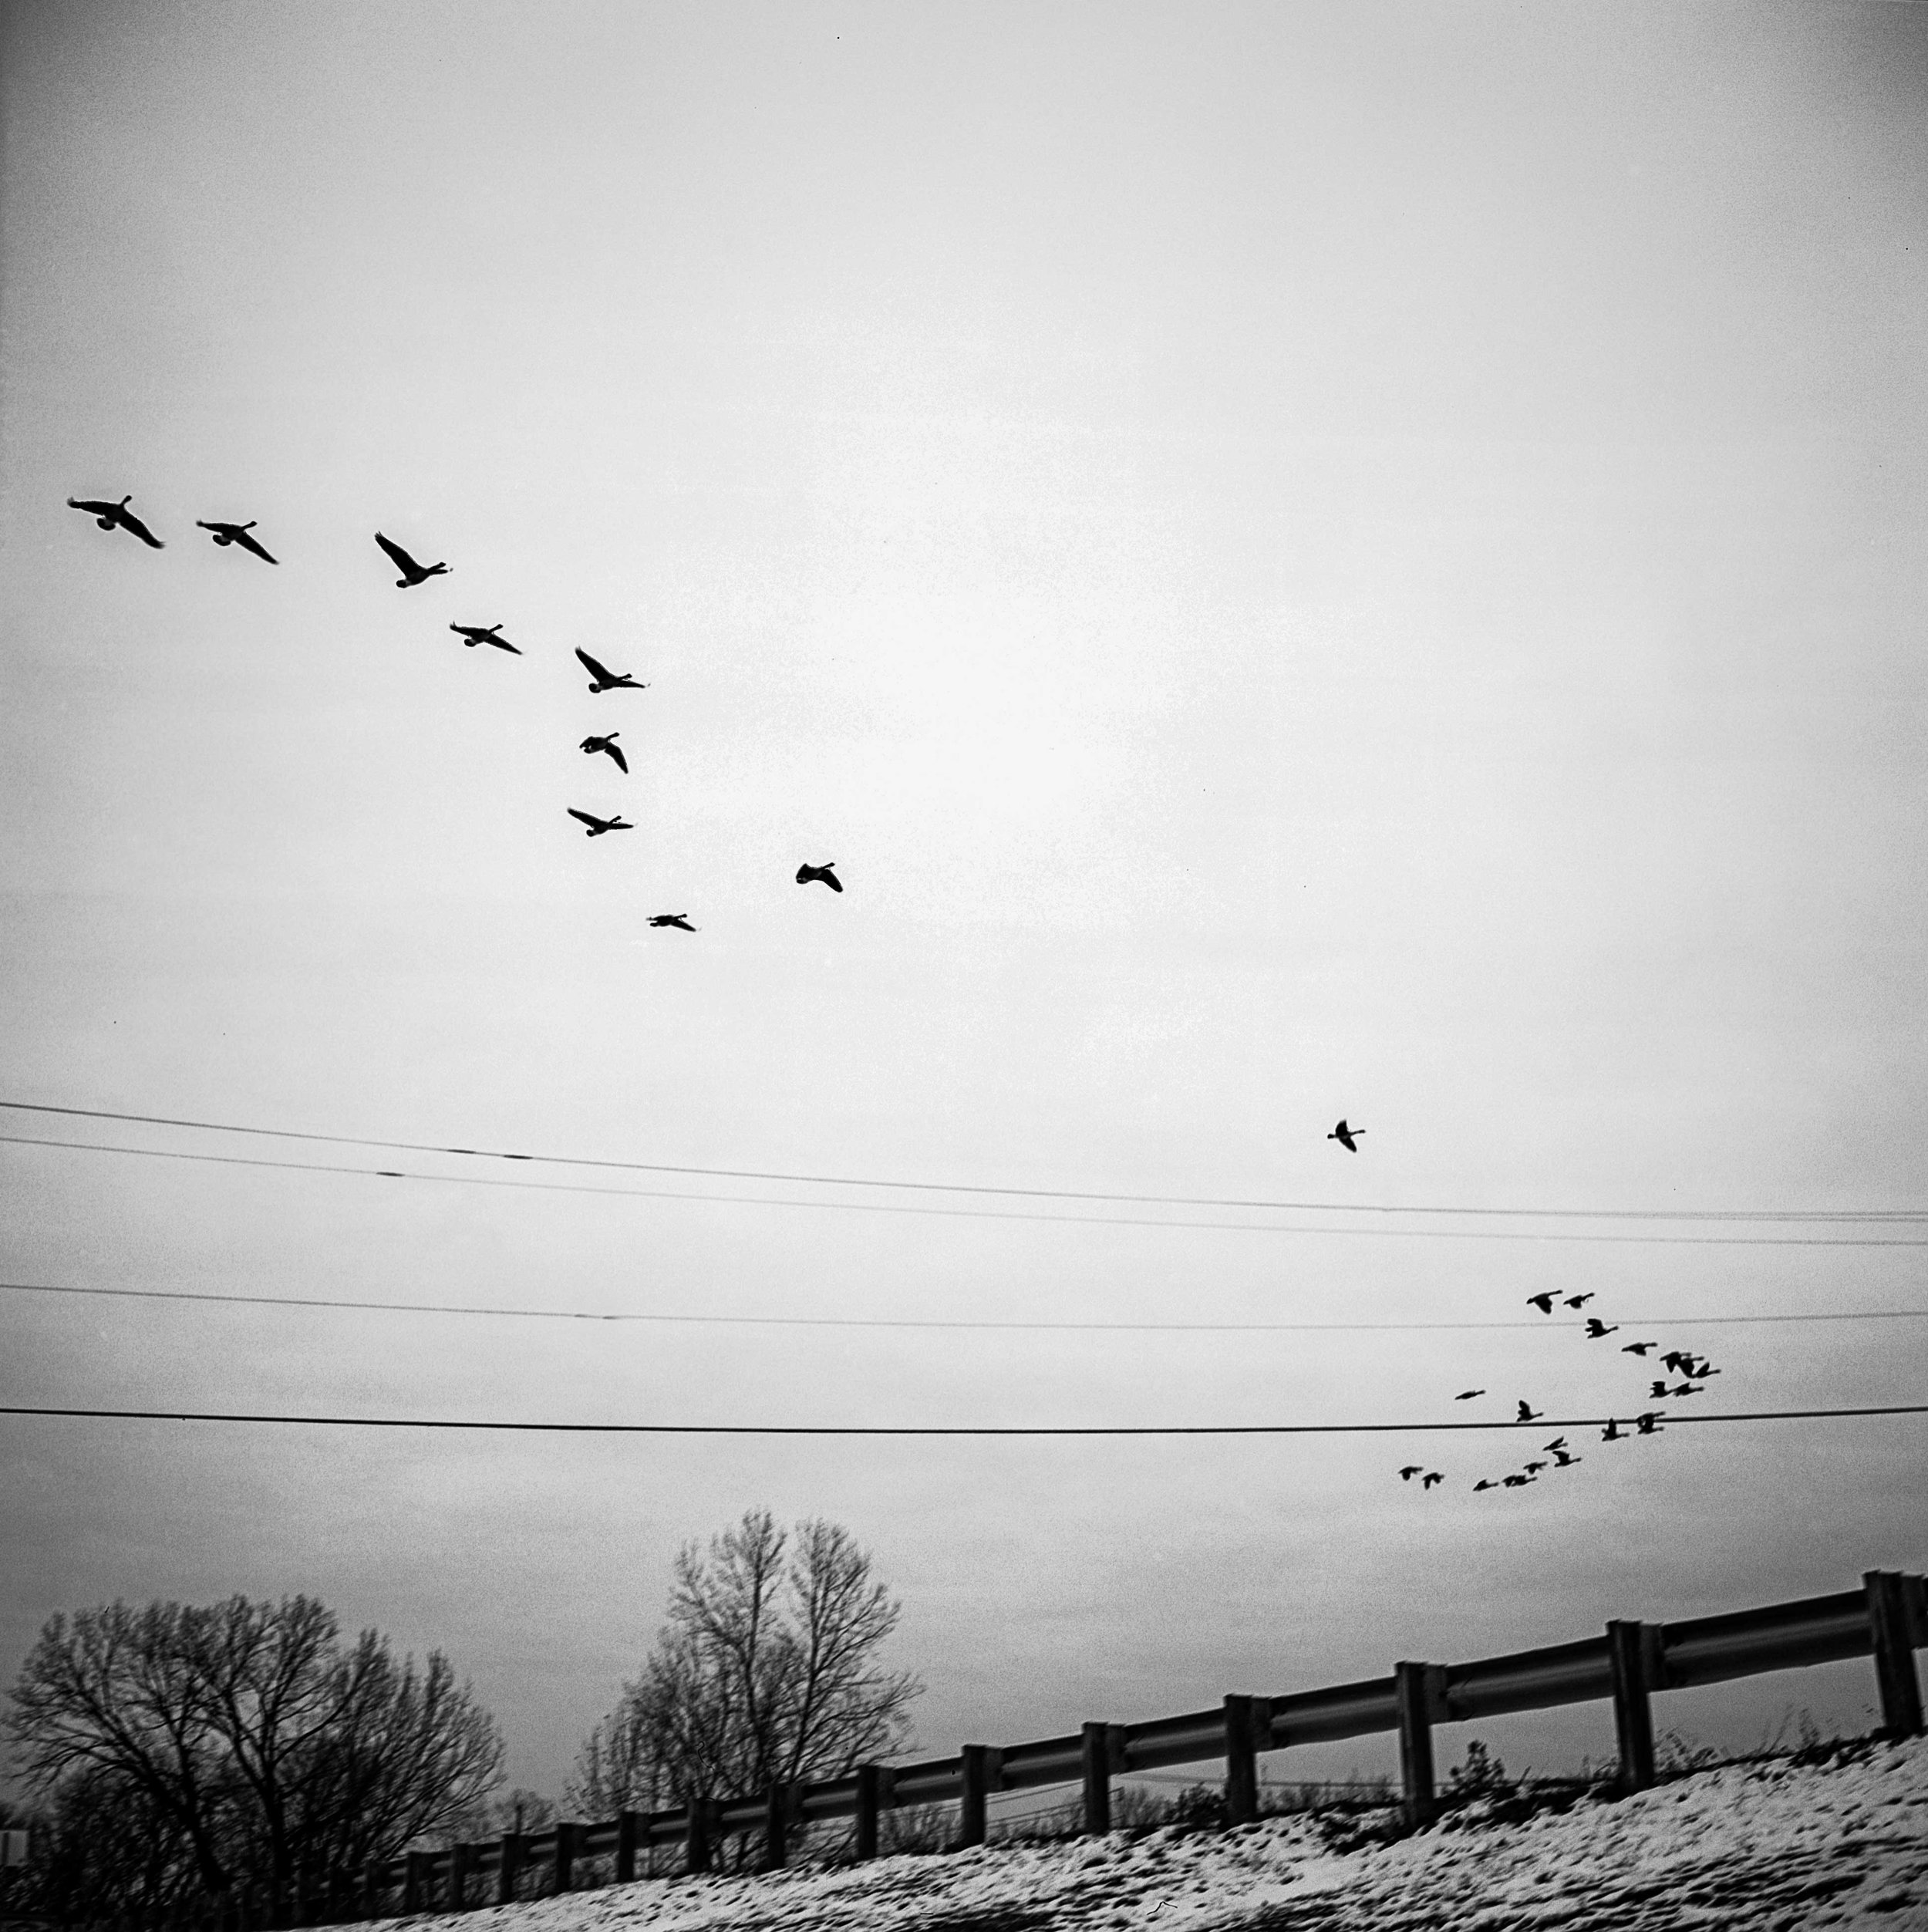 Geese fly Dec. 2017 in St. Louis, Missouri.